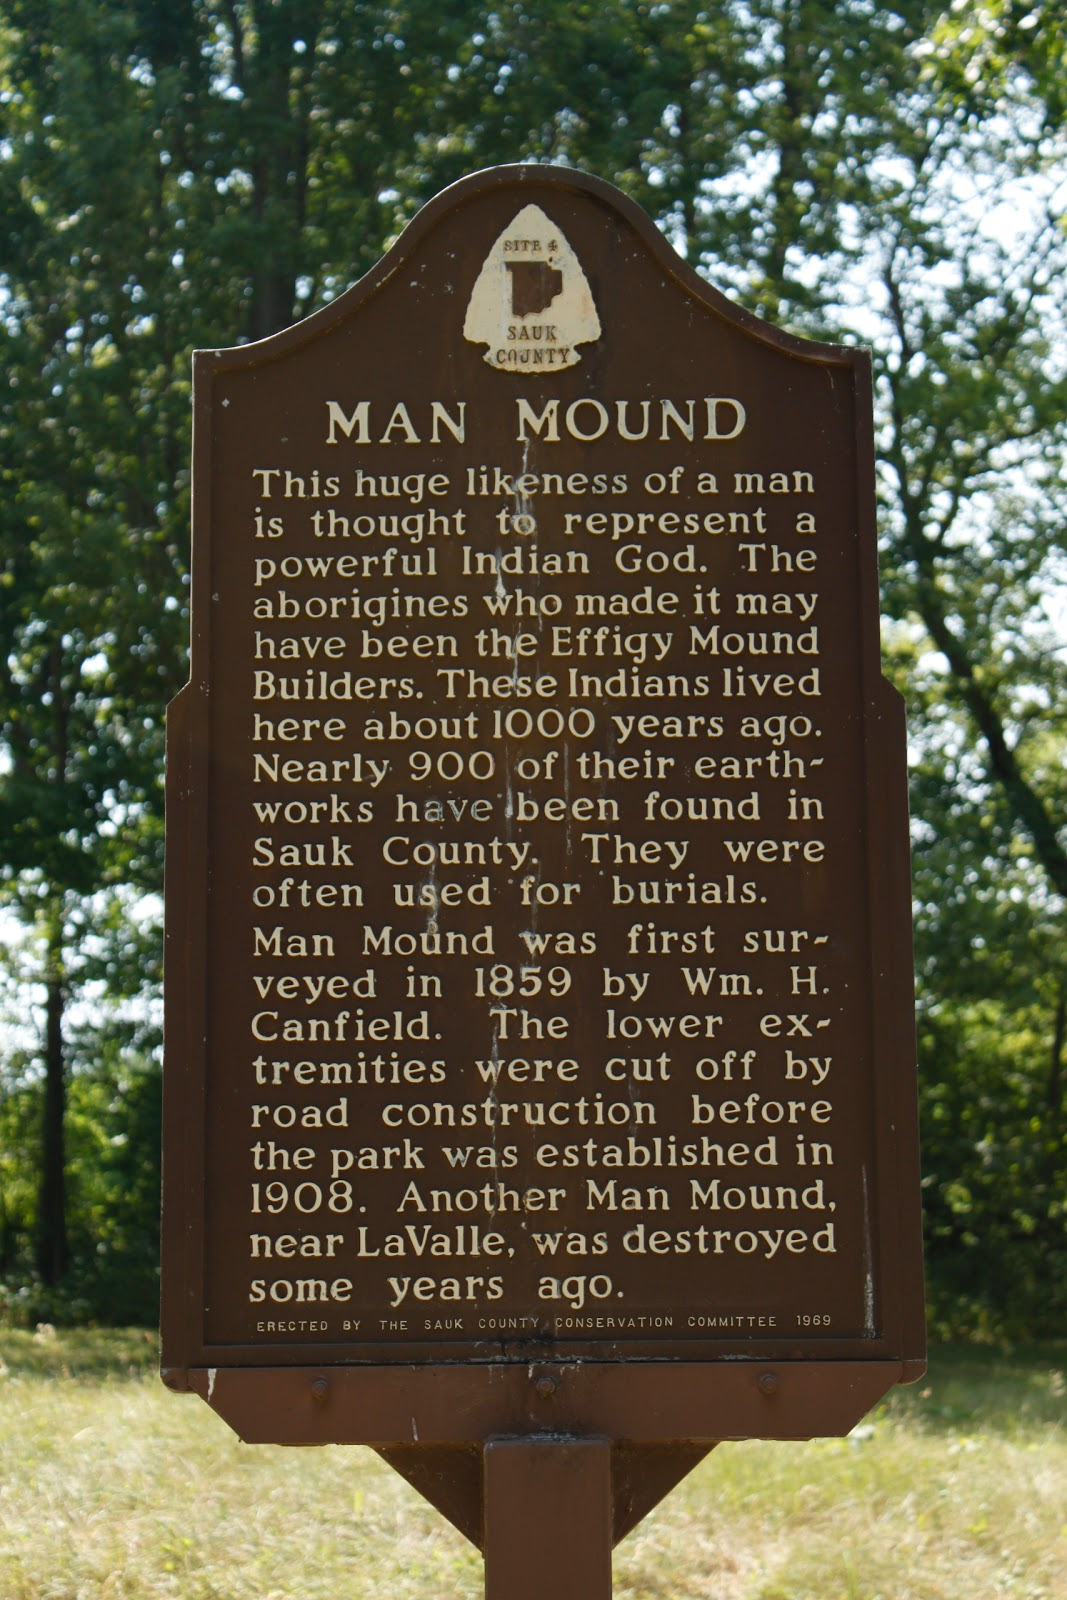 The historical marker for Man Mound.